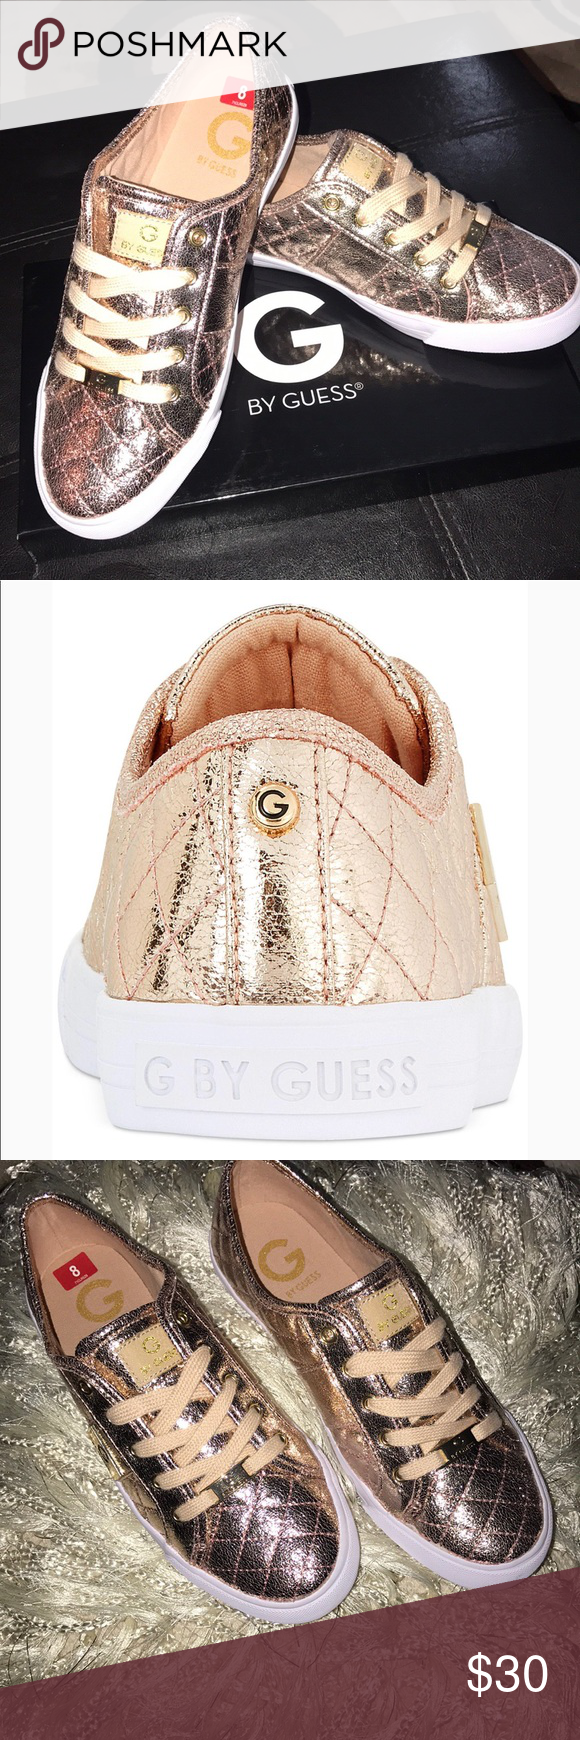 4ac90a48793 G By Guess Rose Gold Metallic Sneaker New in Box